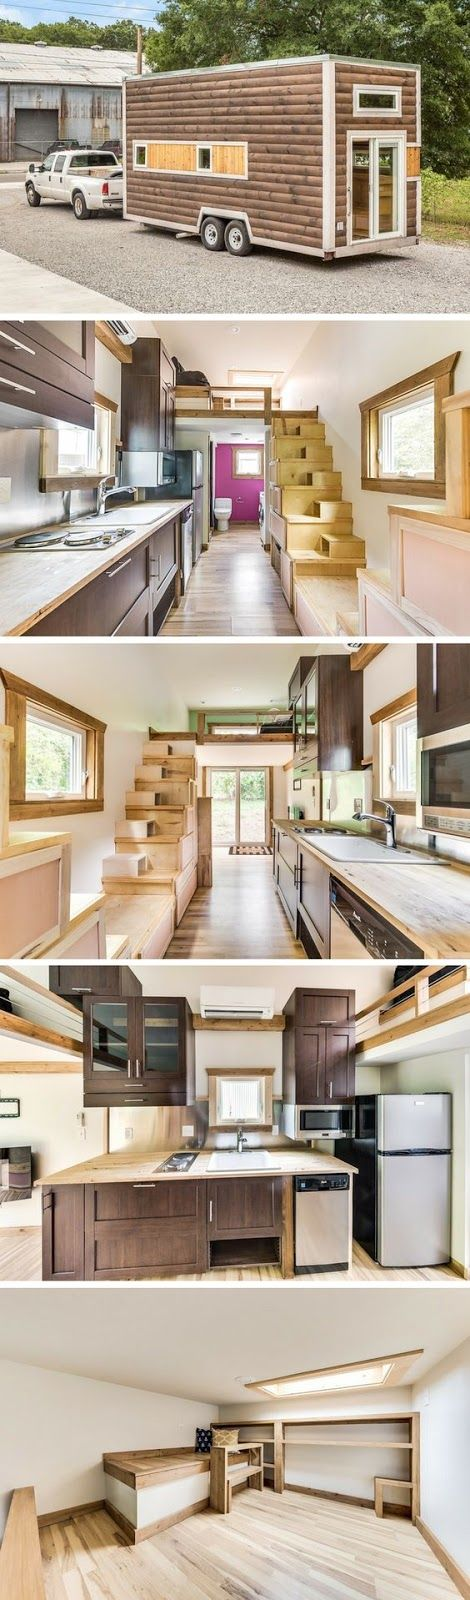 Wondrous 17 Best Ideas About Tiny House Interiors On Pinterest Tiny House Largest Home Design Picture Inspirations Pitcheantrous